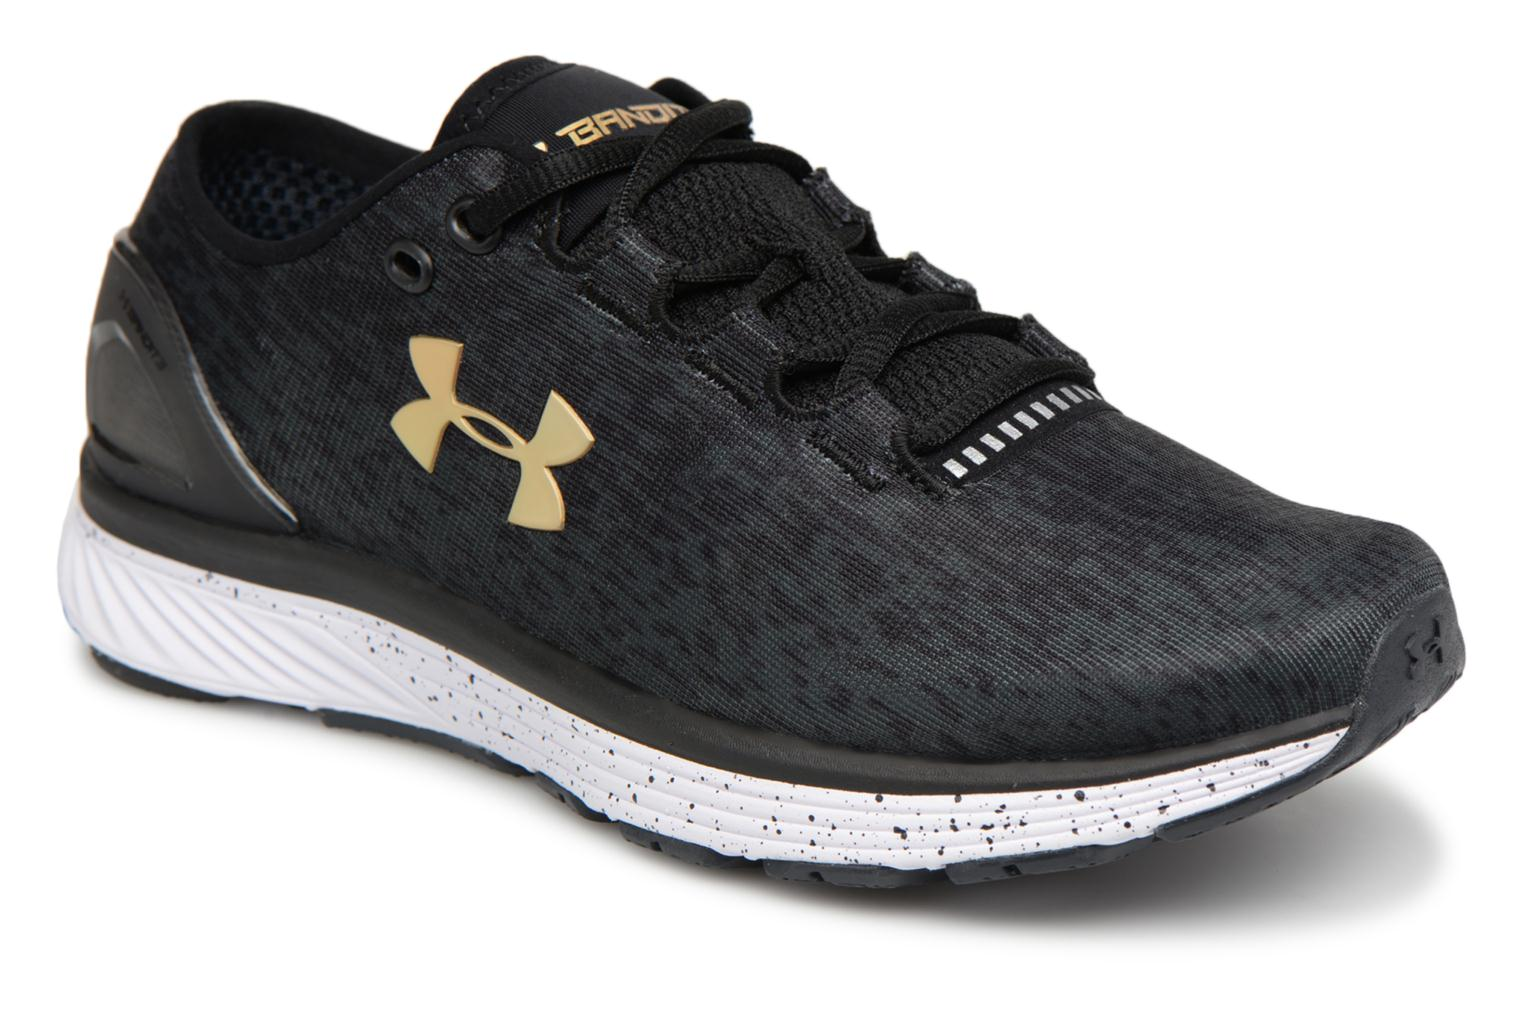 Marques Chaussure homme Under Armour homme Slingflex Black overcast gray